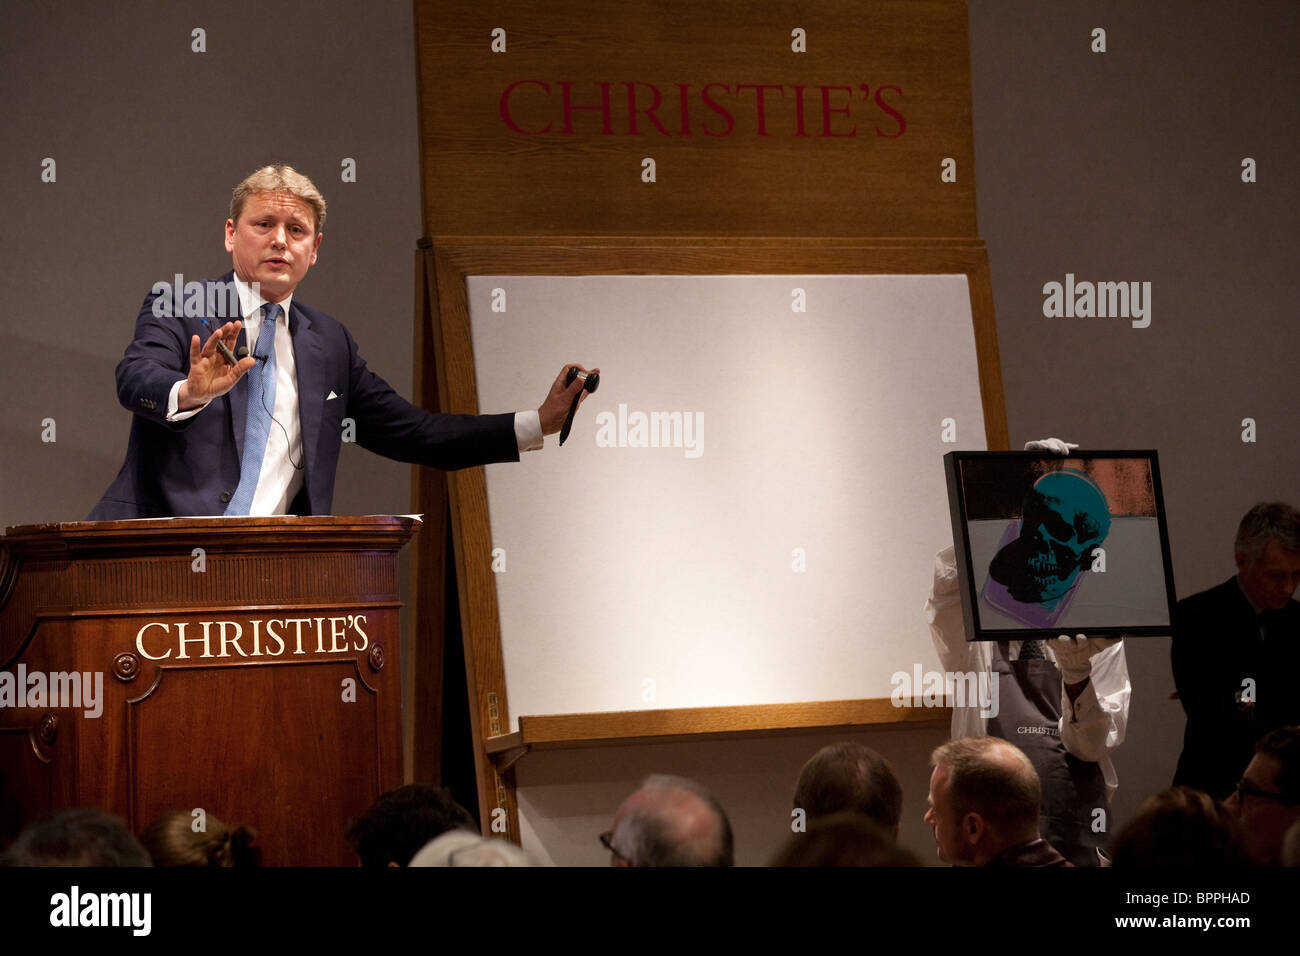 Image shows an Auctioneer taking bids at Christie's Auction house, Old Bond Street, London, UK. Photo:Jeff Gilbert - Stock Image